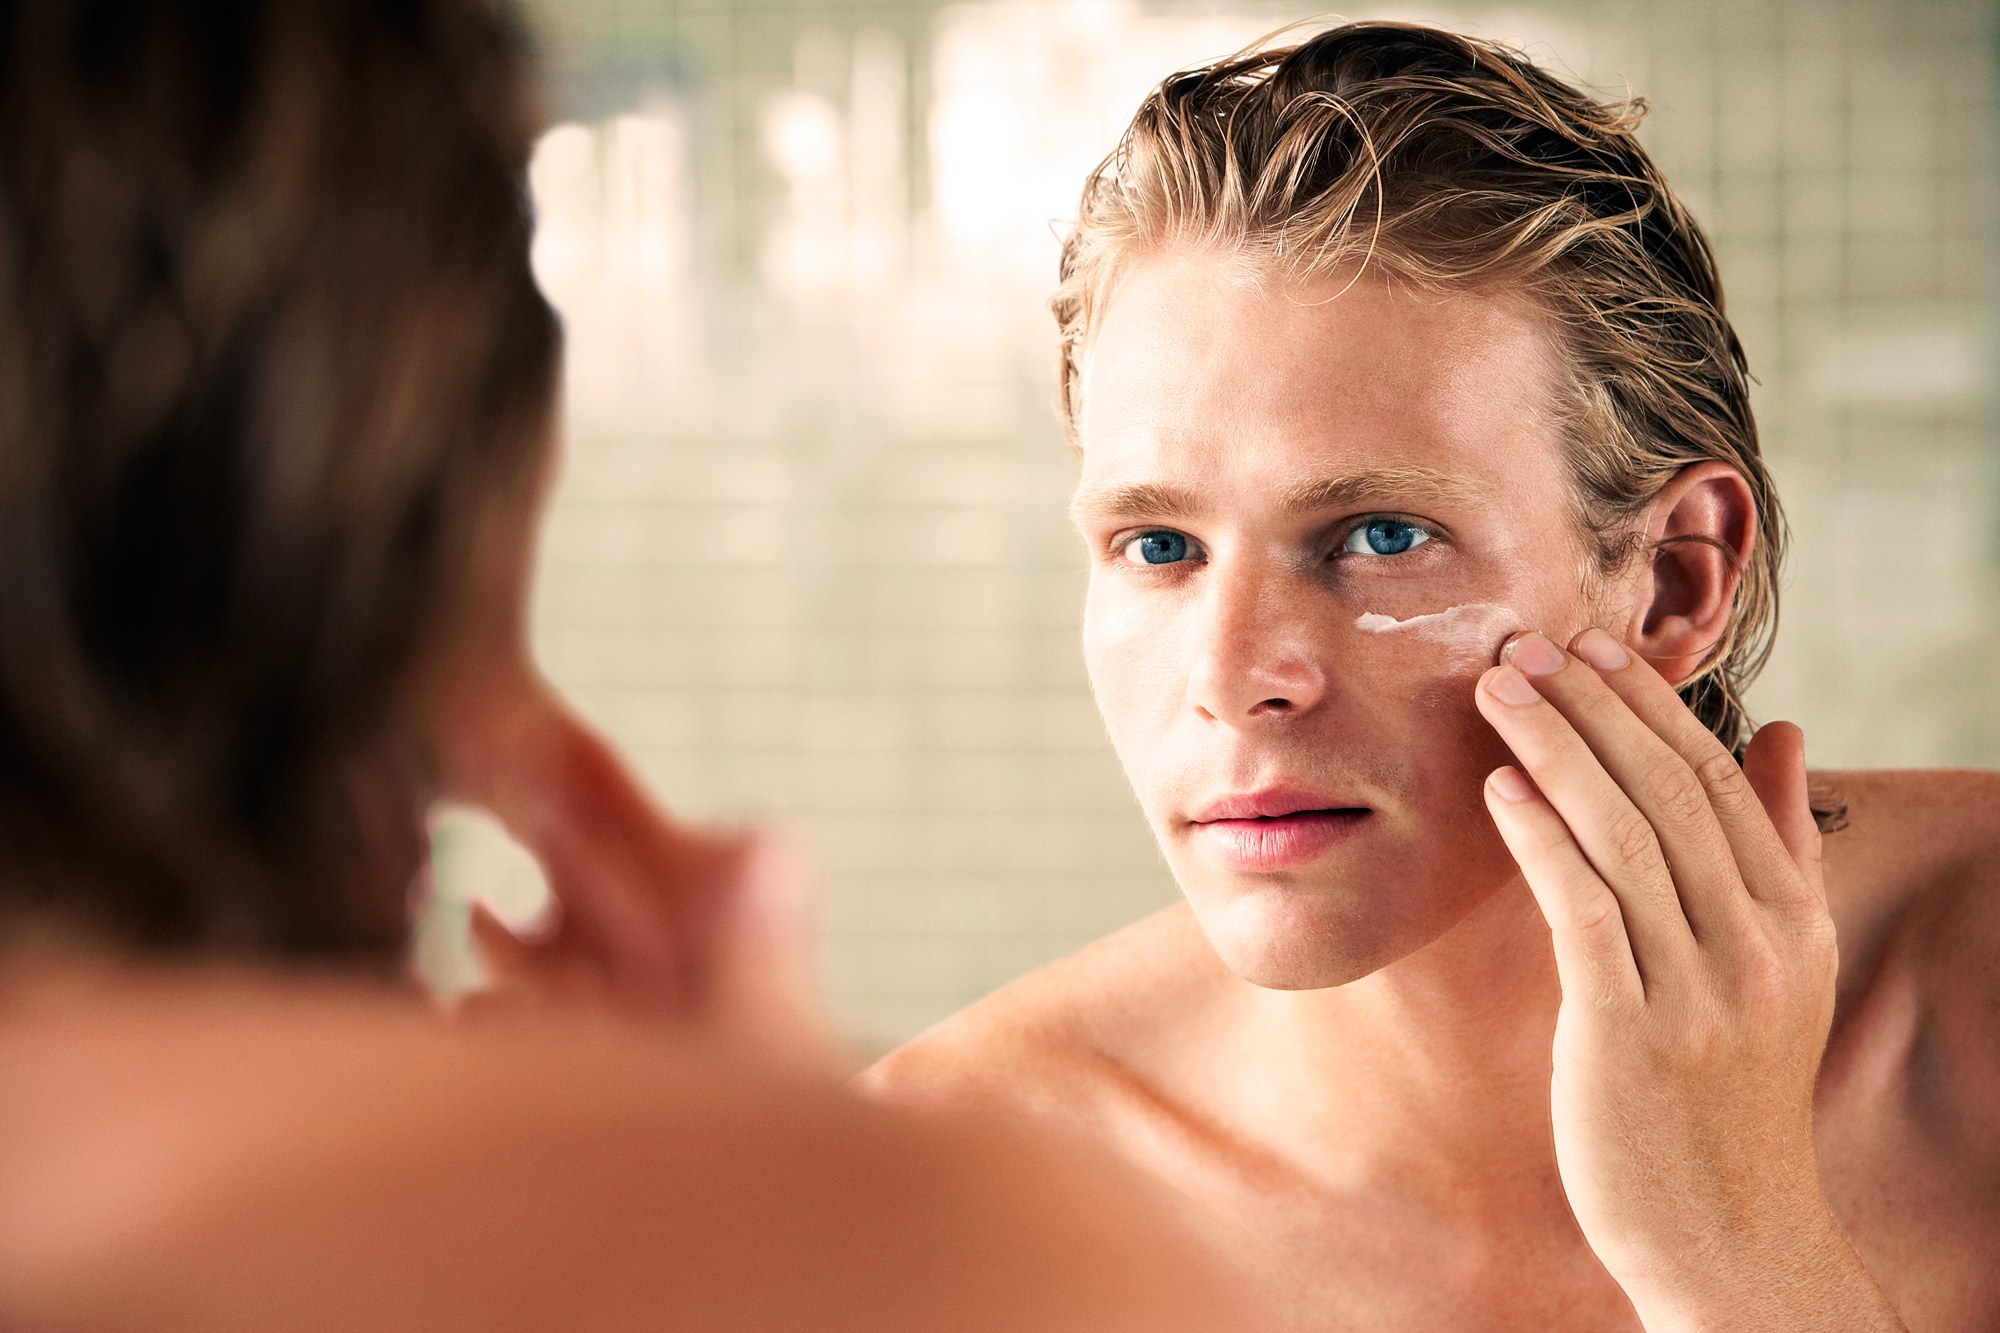 The Best Makeup Tips for Men